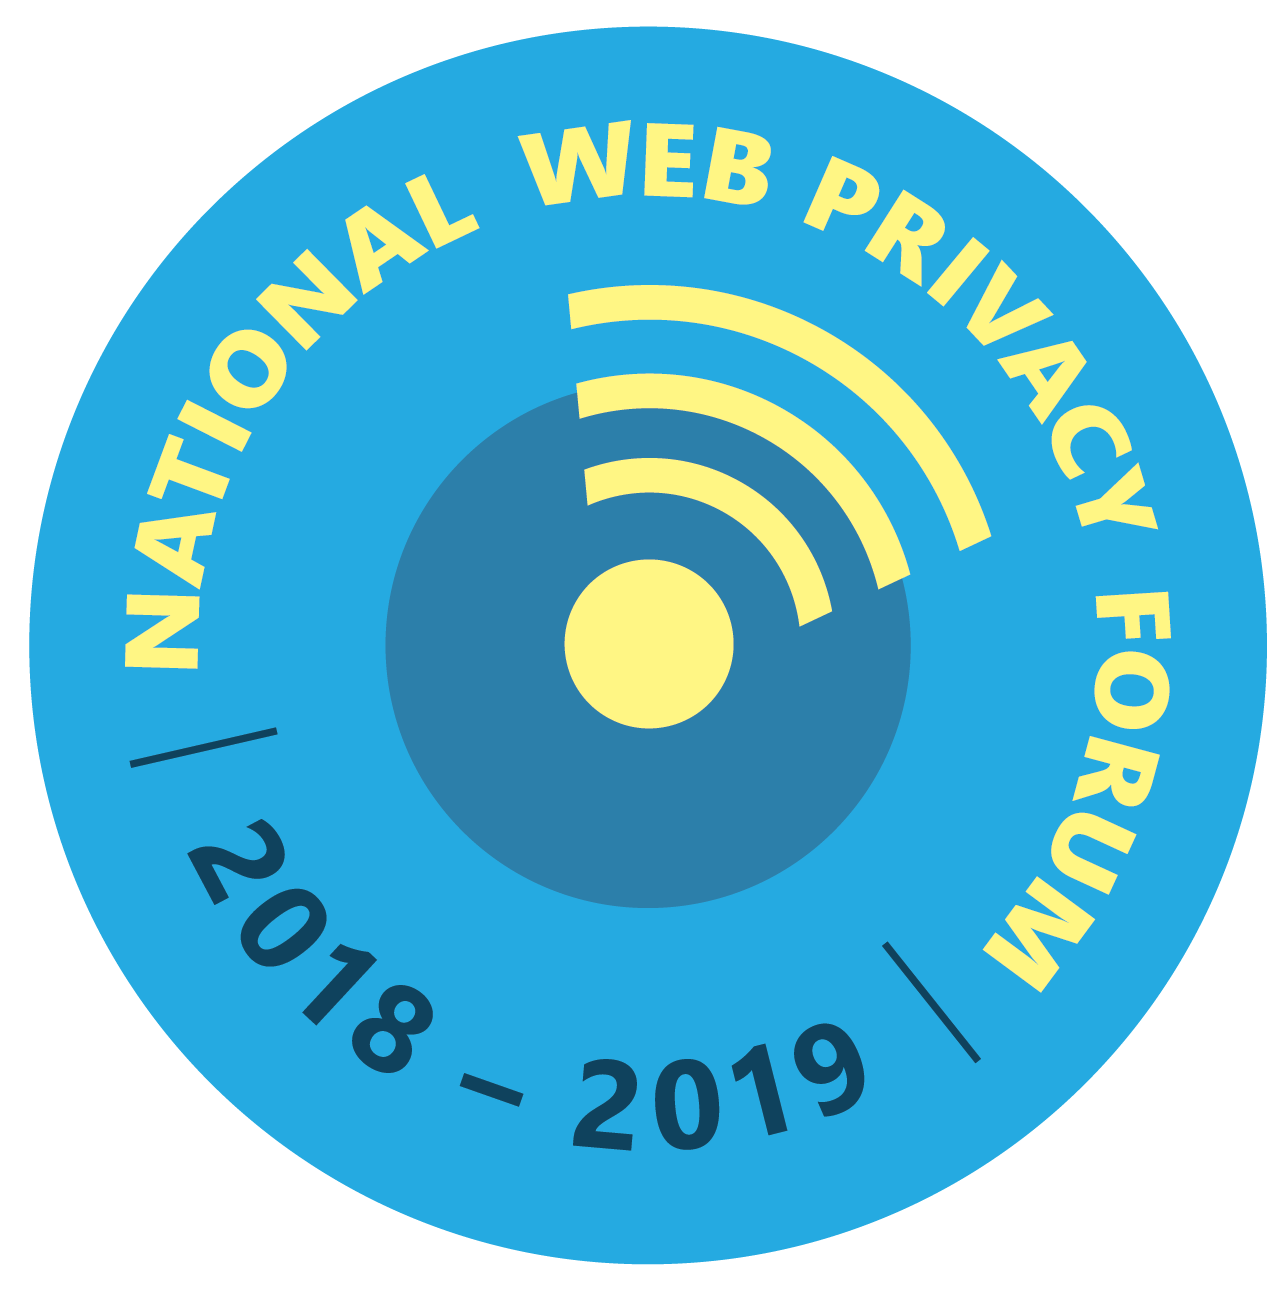 National Web Privacy Forum.